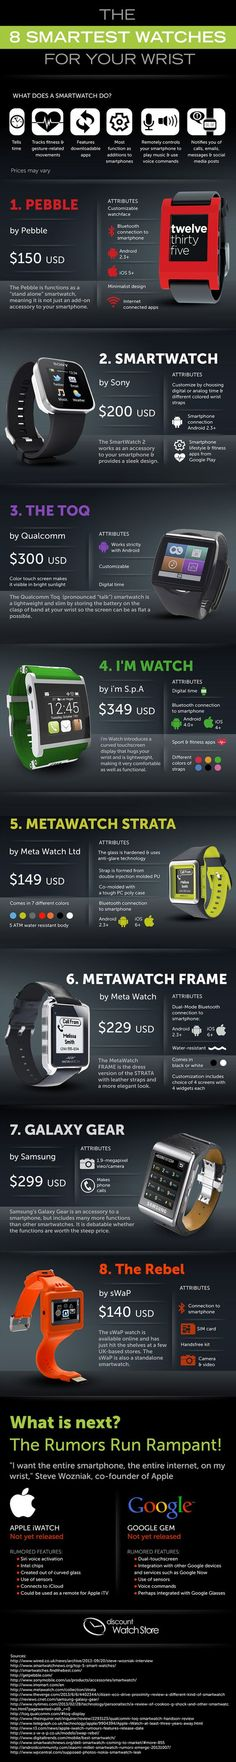 Top 8 hottest smartwatches, circa late 2013